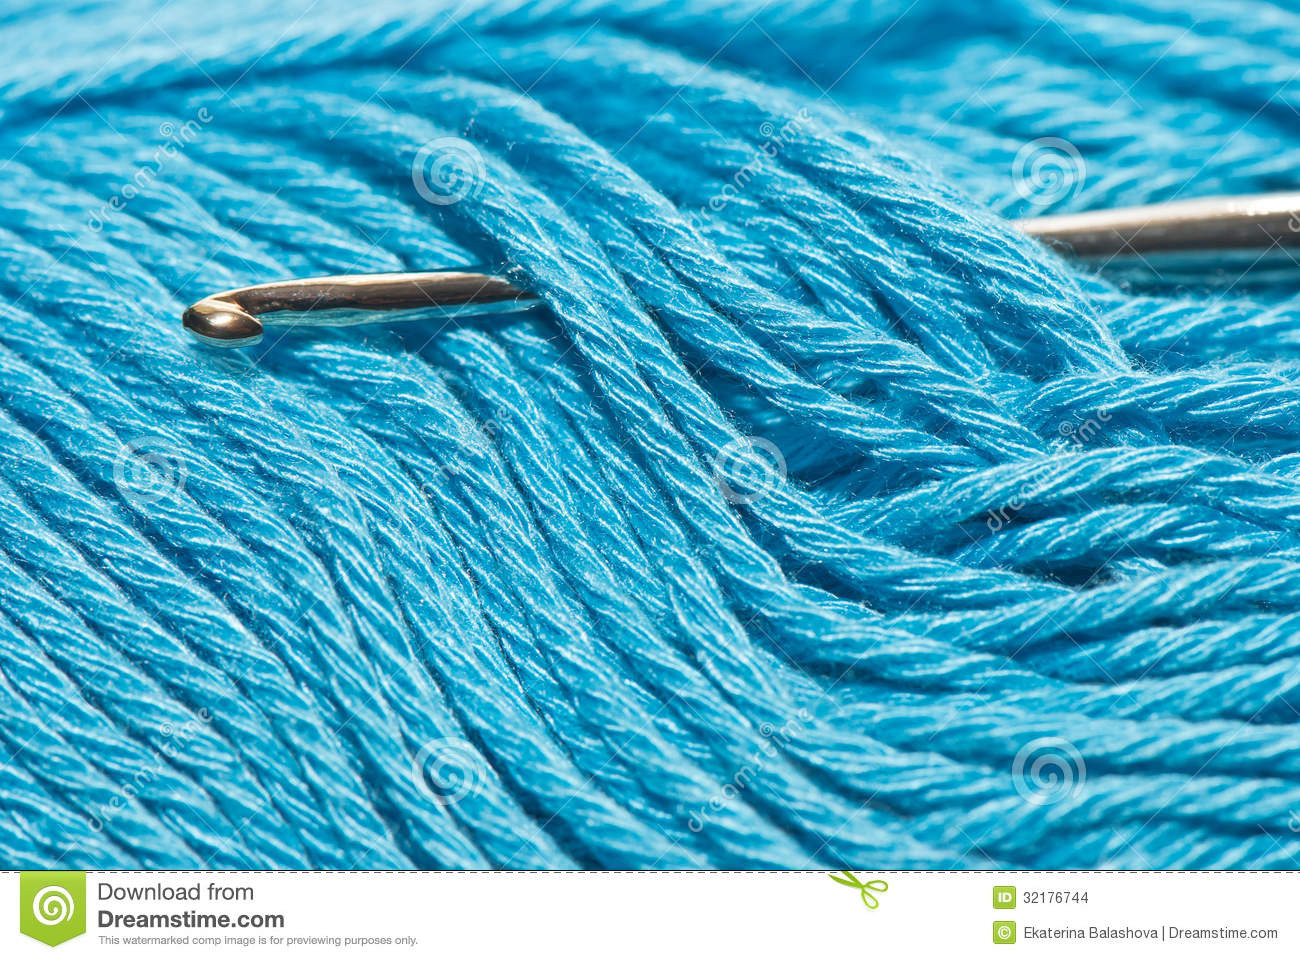 Crochet Hook and Yarn Awesome Yarn and Crochet Hook Stock Image Of Superb 44 Images Crochet Hook and Yarn